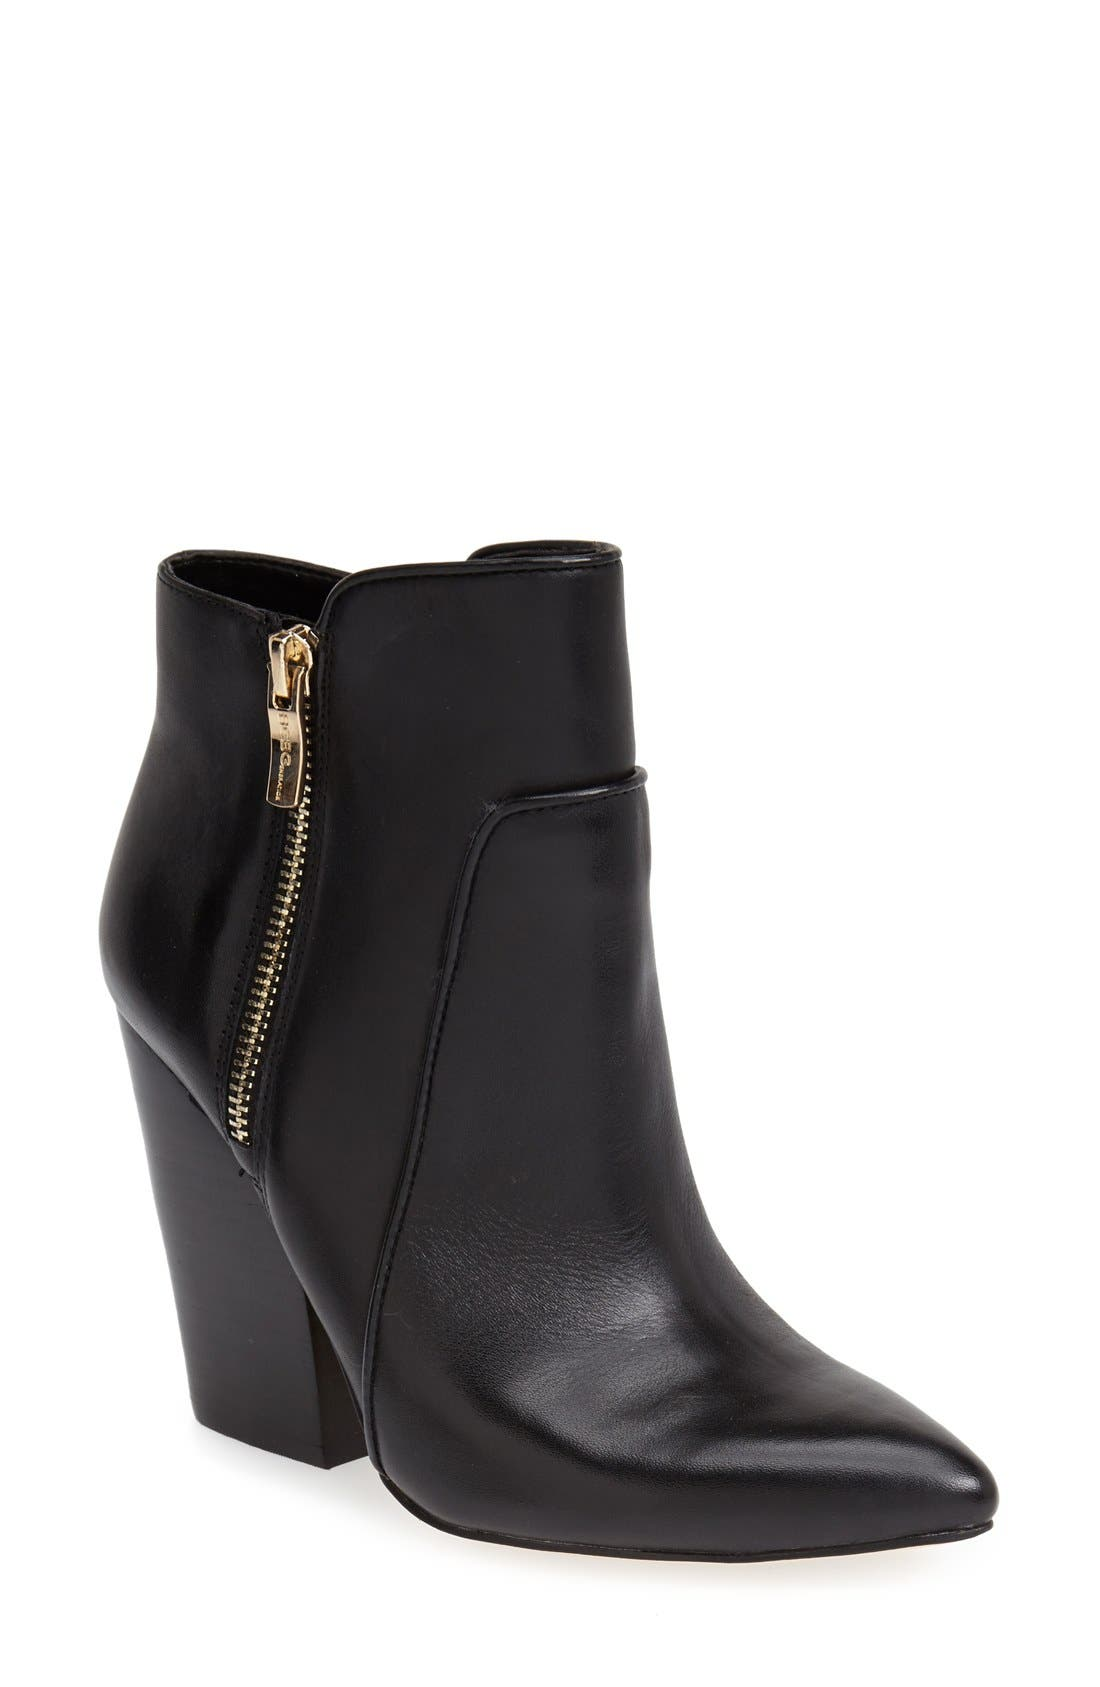 Main Image - BCBGeneration 'Jules' Pointy Toe Leather Bootie (Women)